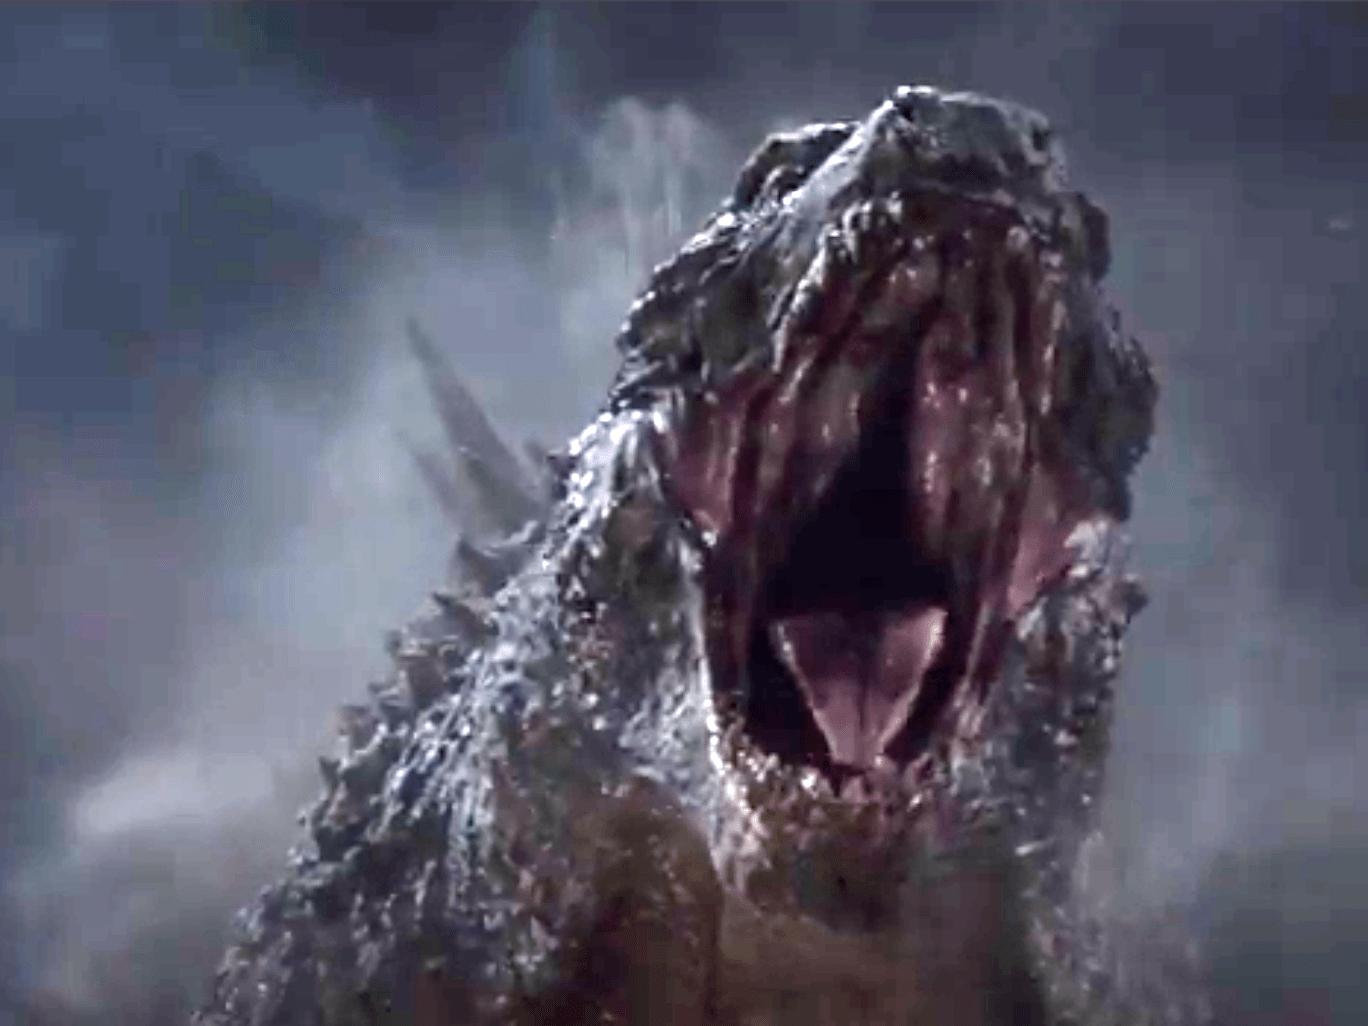 https://i1.wp.com/static4.businessinsider.com/image/5341a0aaeab8ea2037101c56/new-godzilla-trailer-shows-first-good-look-at-the-monster.jpg